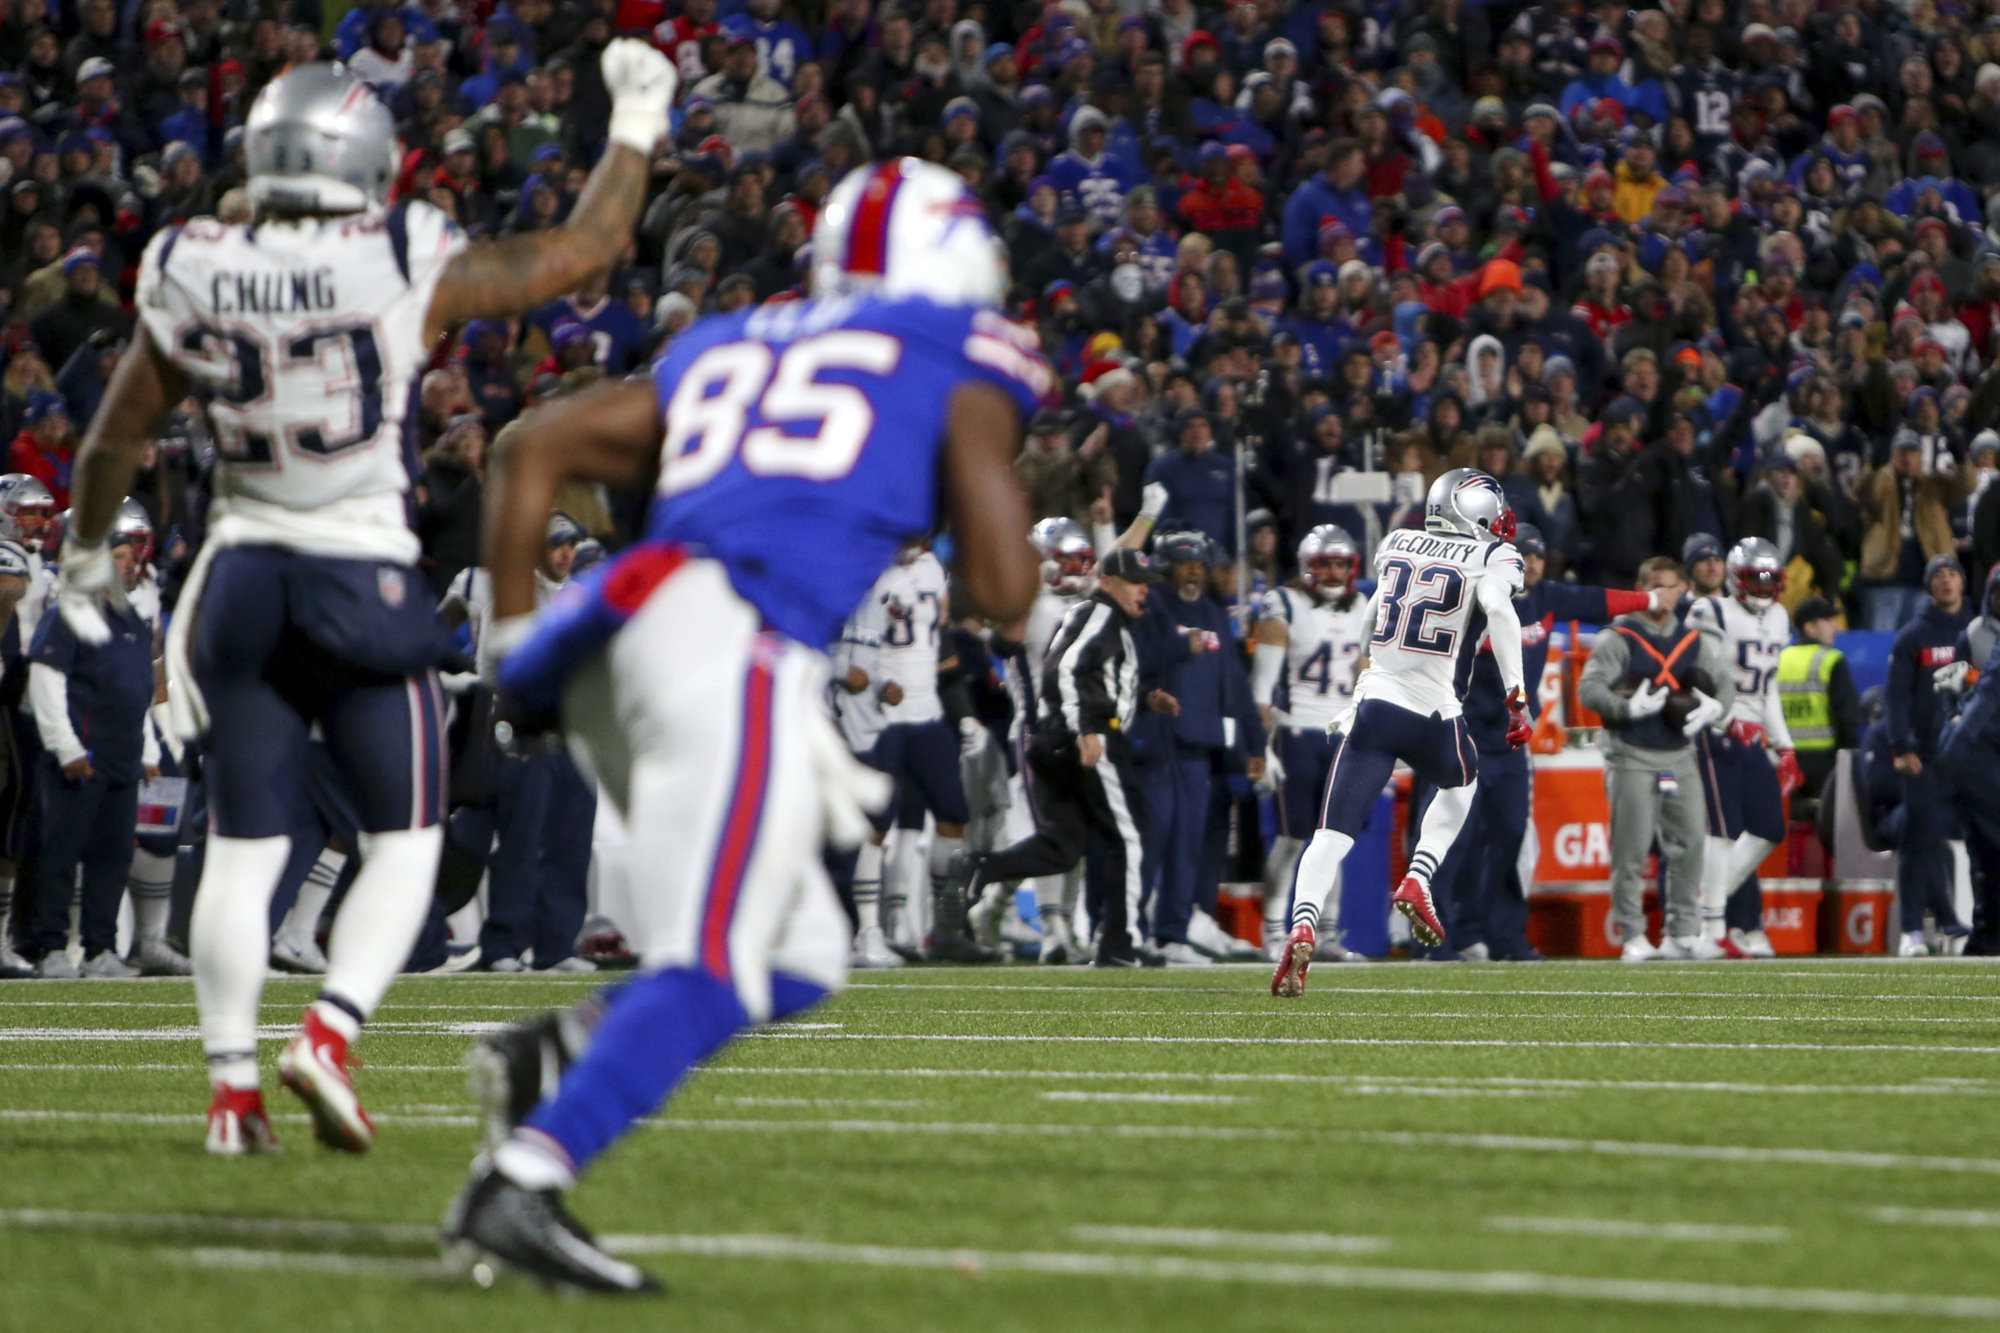 New England Patriots free safety Devin McCourty (32) returns an interception for a touchdown on a pass from Buffalo Bills quarterback Derek Anderson, not pictured, during the second half of an NFL football game, Monday, Oct. 29, 2018, in Orchard Park, N.Y. (AP Photo/Jeffrey T. Barnes)